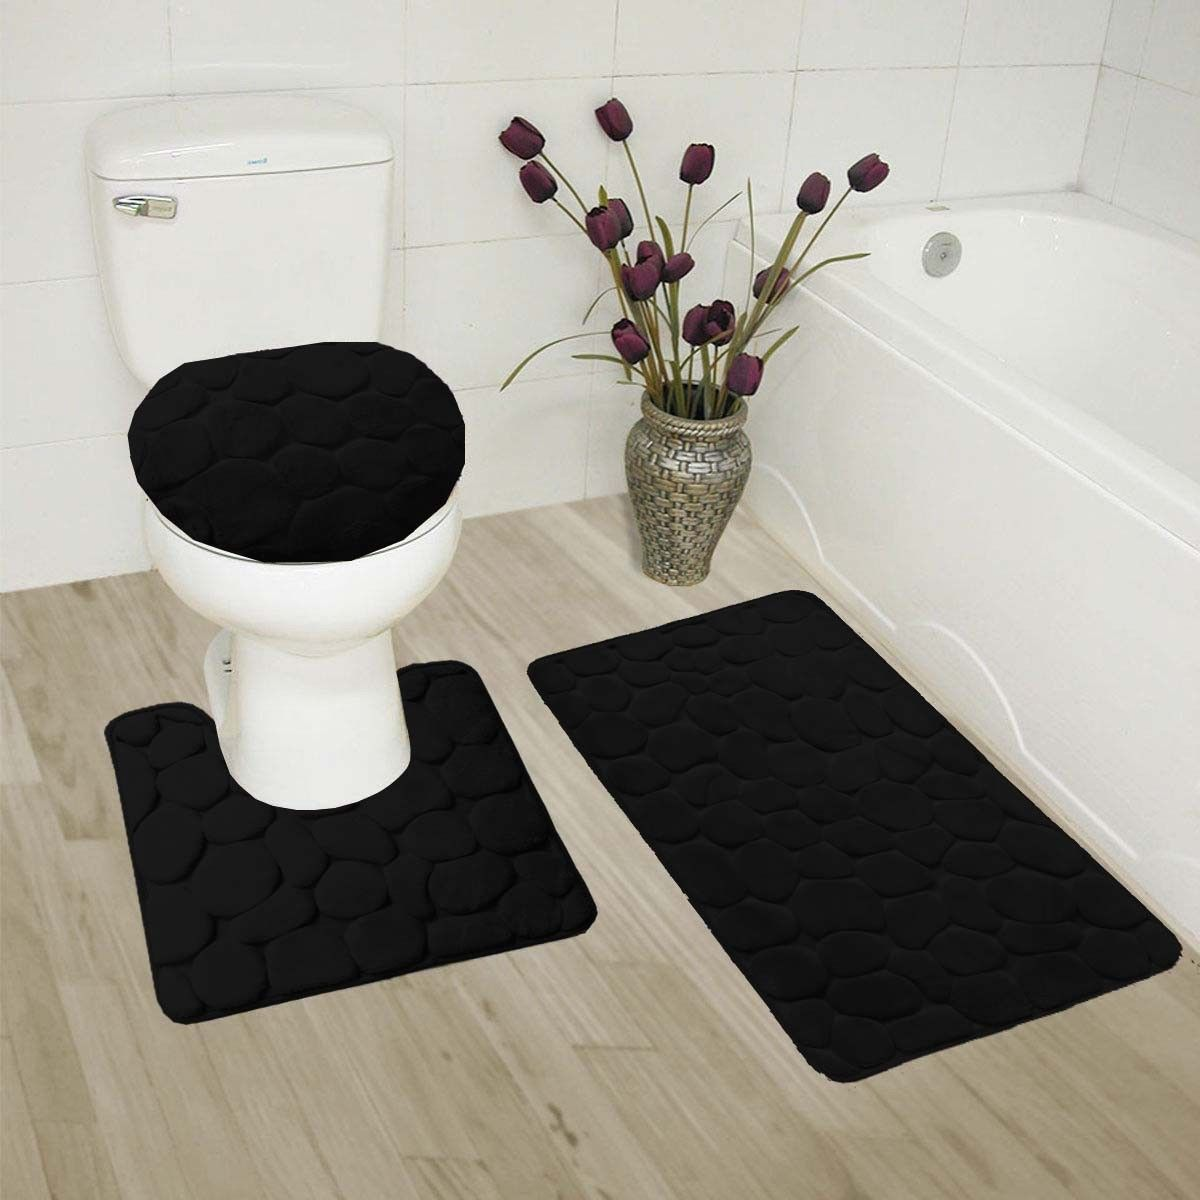 "ROCK BLACK 3-Piece Embossed Bathroom Rug Set Super Soft Memory Foam Bath Mat, Rug 19""x 30"", Contour Mat 19""x19"" and Toilet Lid Cover 19""x19"" with Non-Skid Rubber Back"